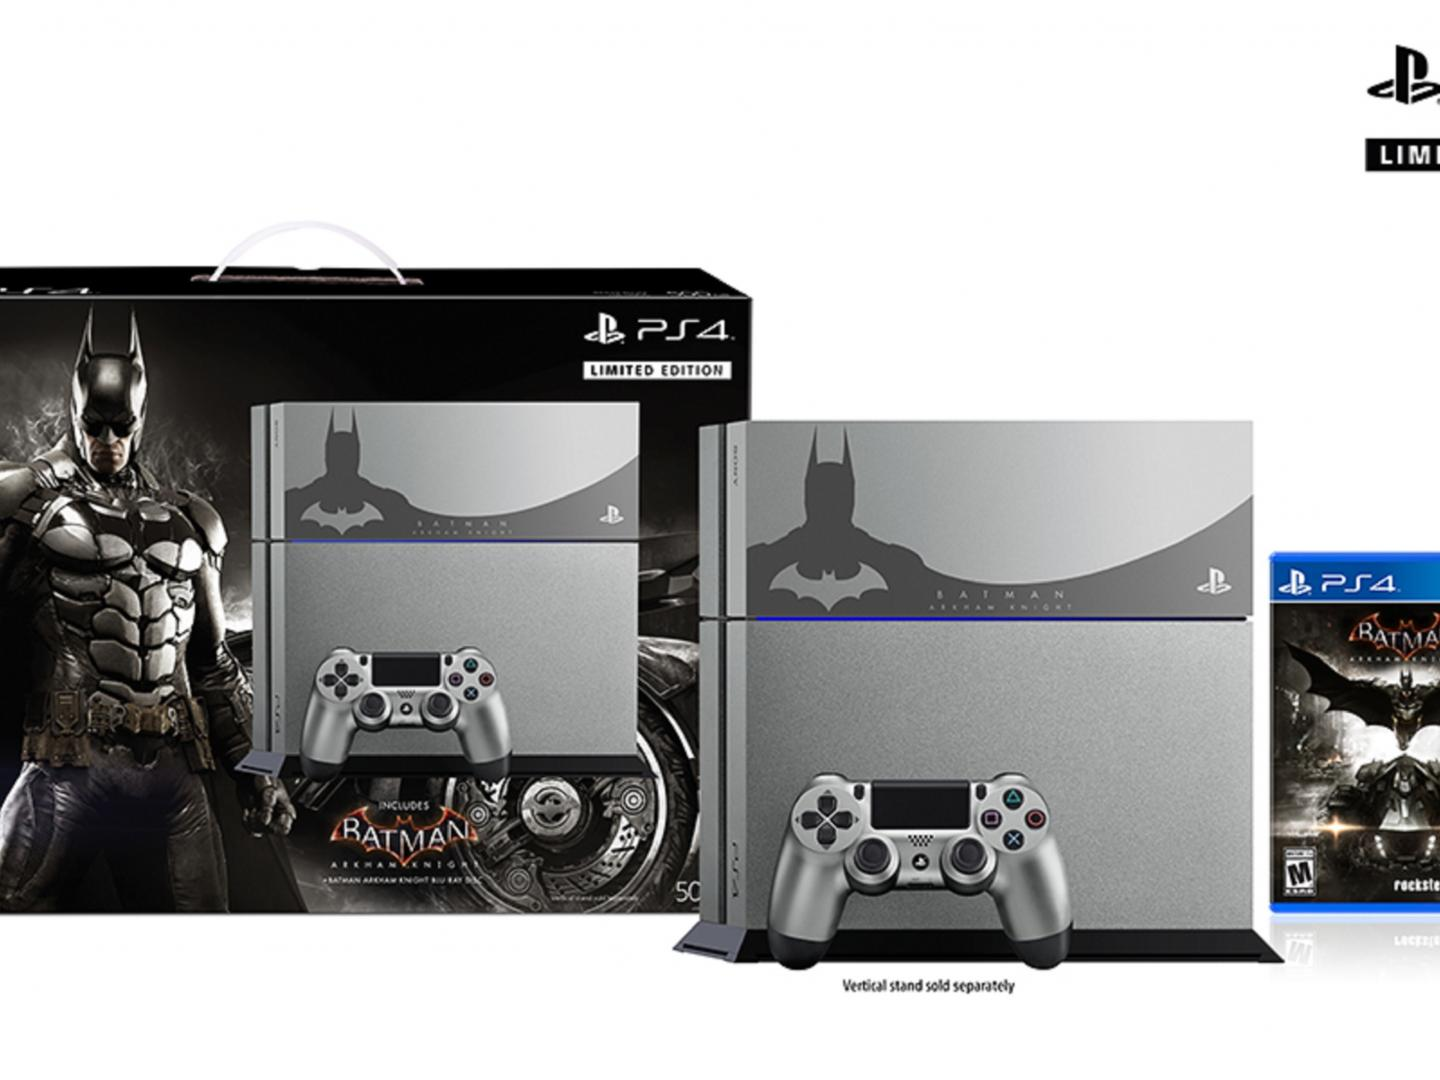 Batman: Arkham Knight Limited Edition Packaging Thumbnail